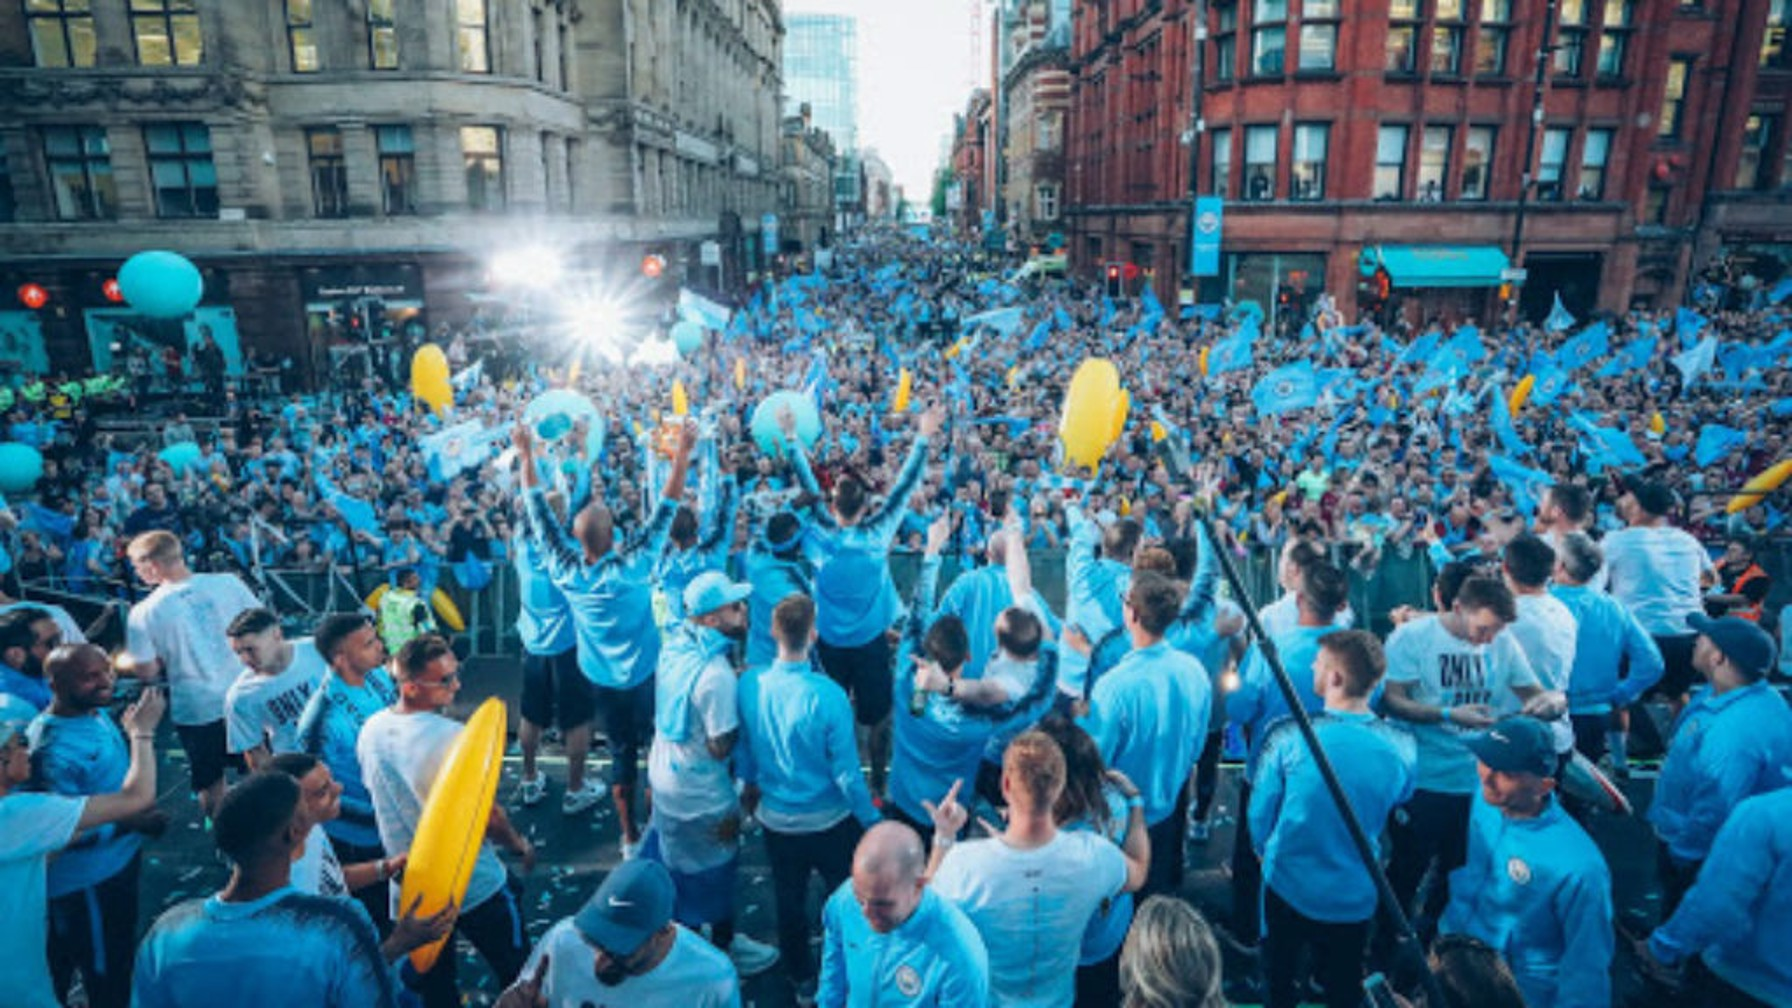 EPIC: The streets of Manchester lined with Blue...